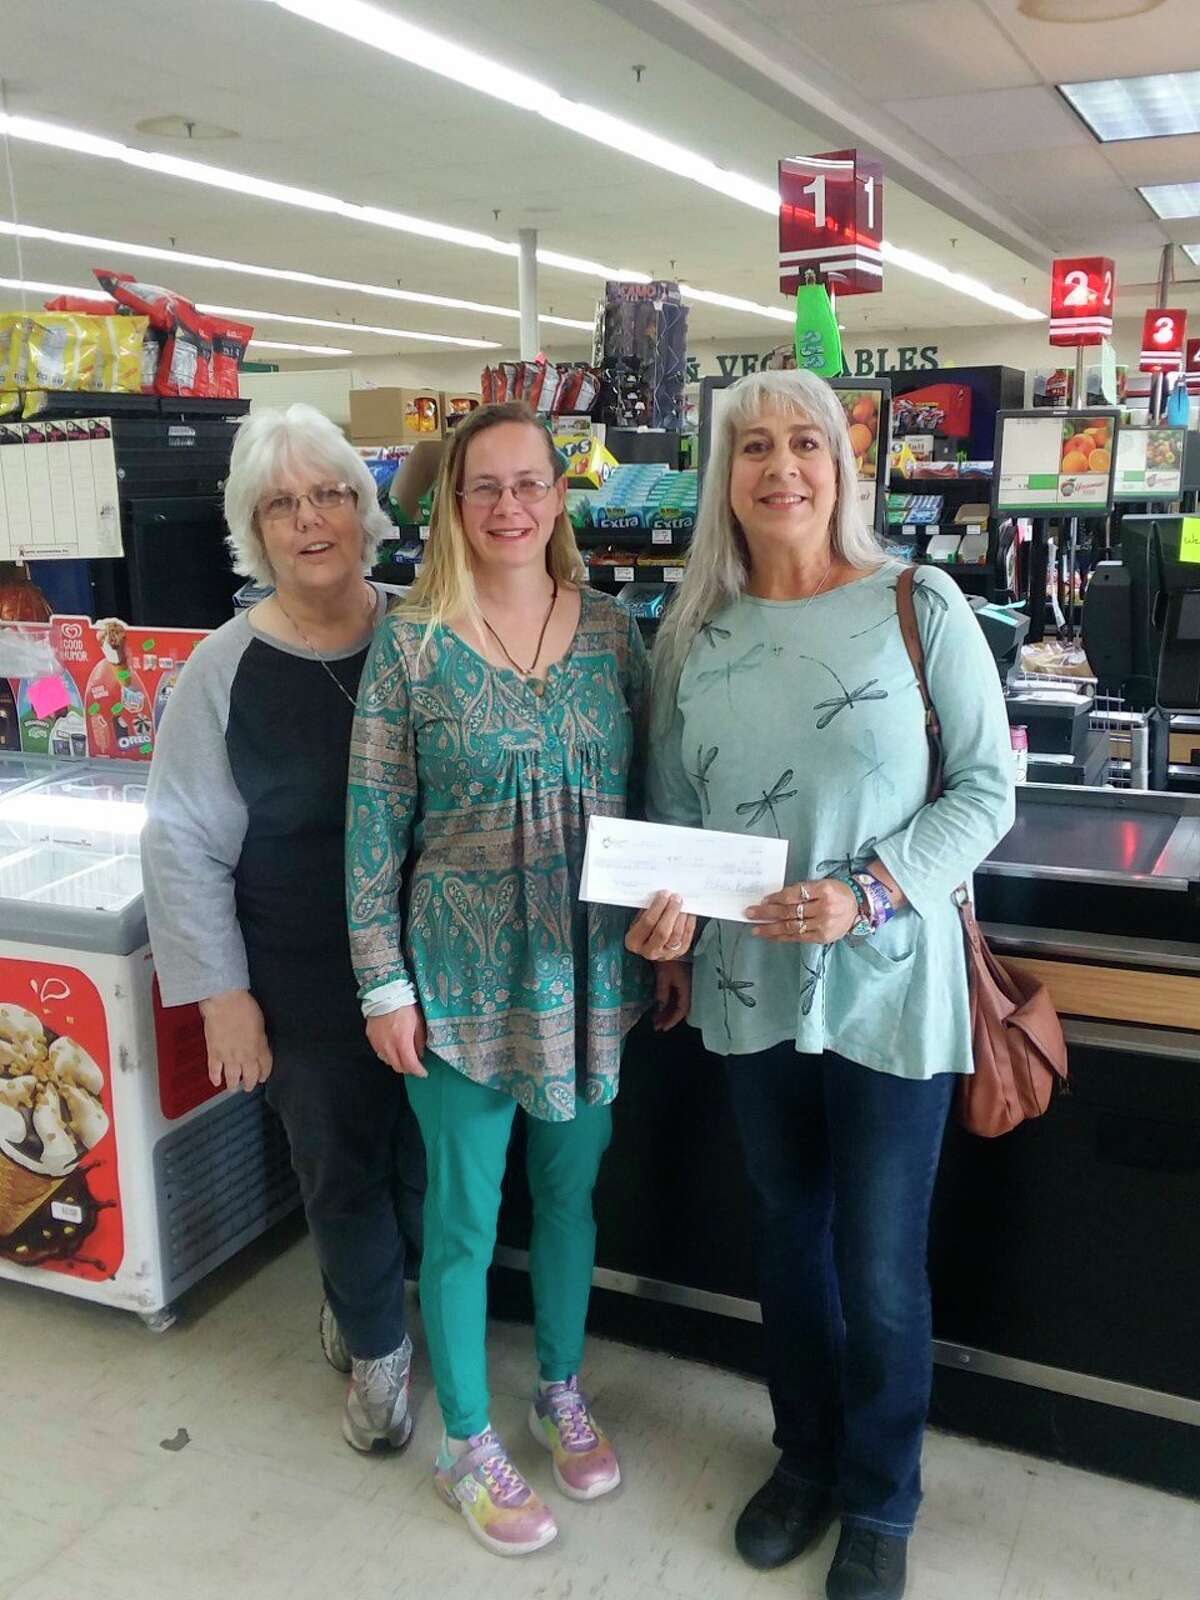 """Bread of Life Pantry director Lynne Mills, far right, accepts a donation of $690 from Houseman's Labor Day """"$1 at check out"""" campaign. Pictured with Mills are Houseman's associates Rebecca French (left) and Cassidy Holtrust."""